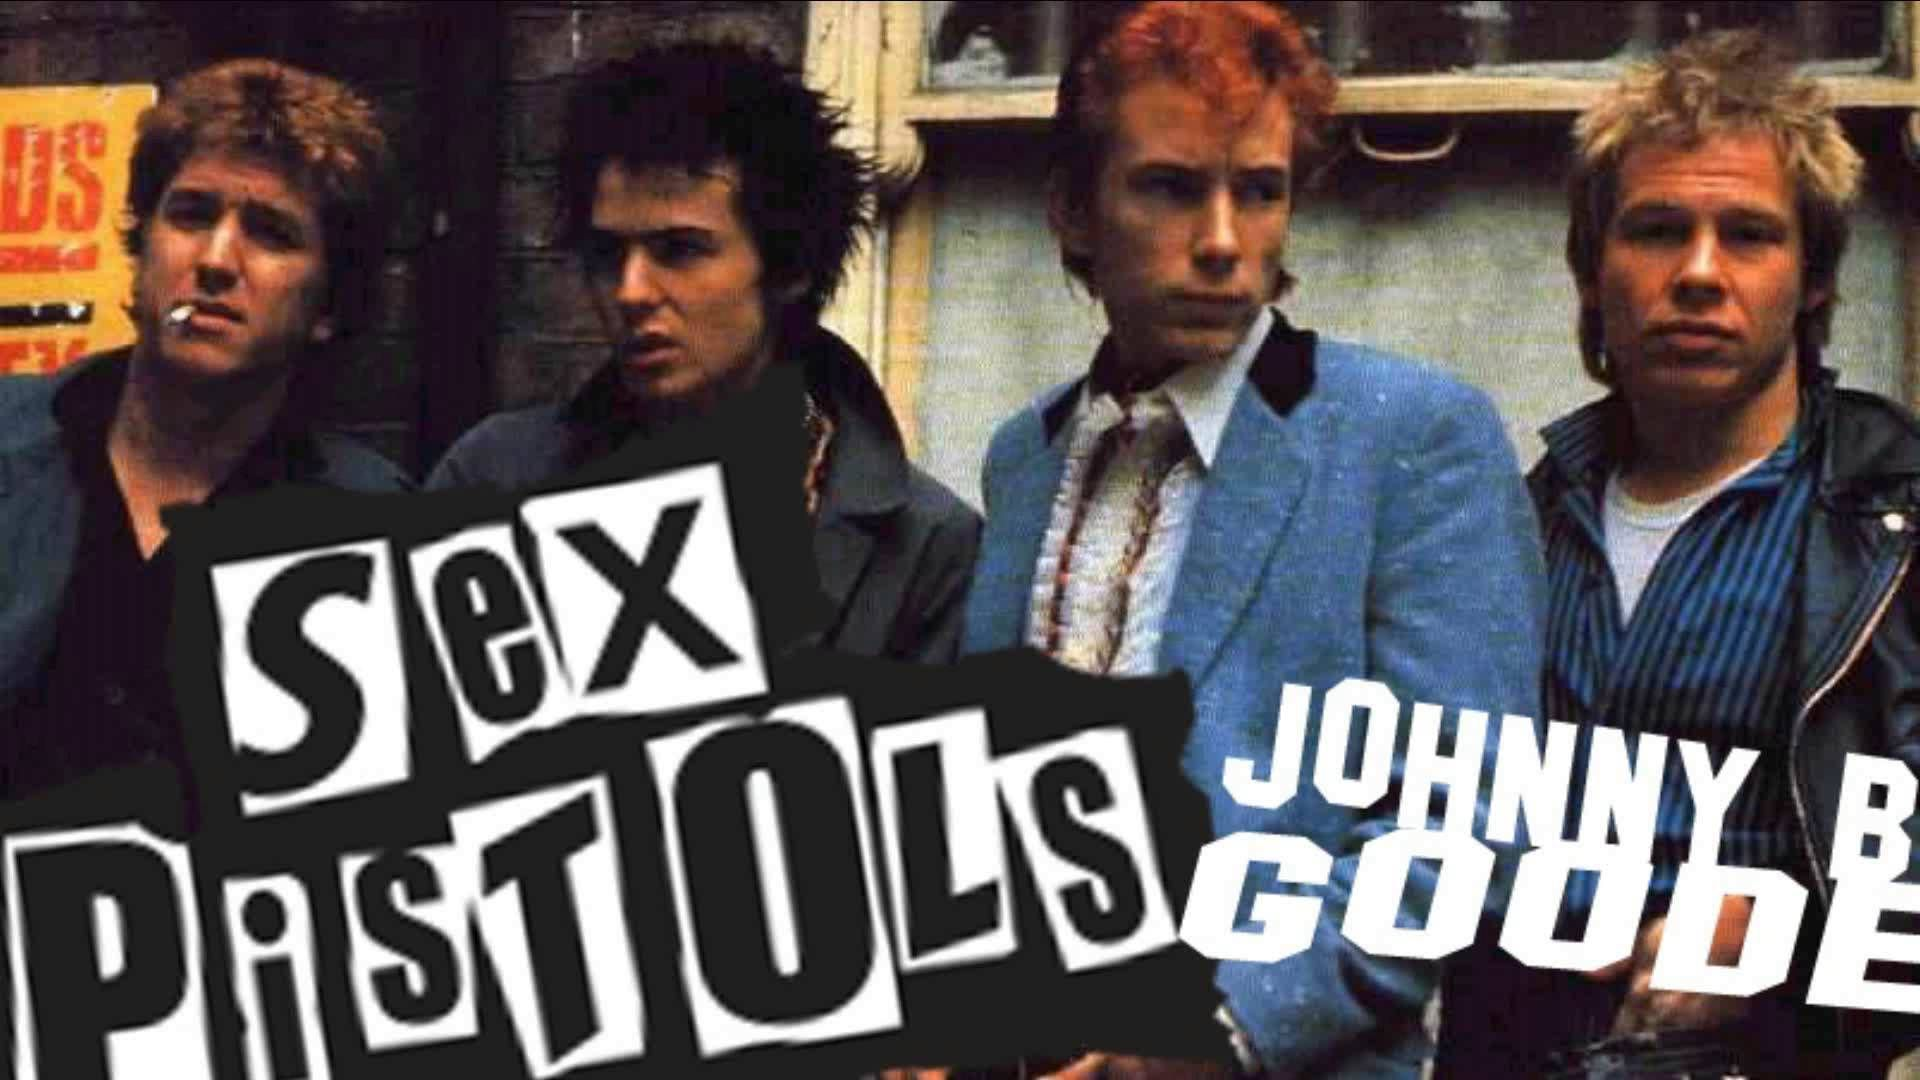 Sex pistols johnny b goode